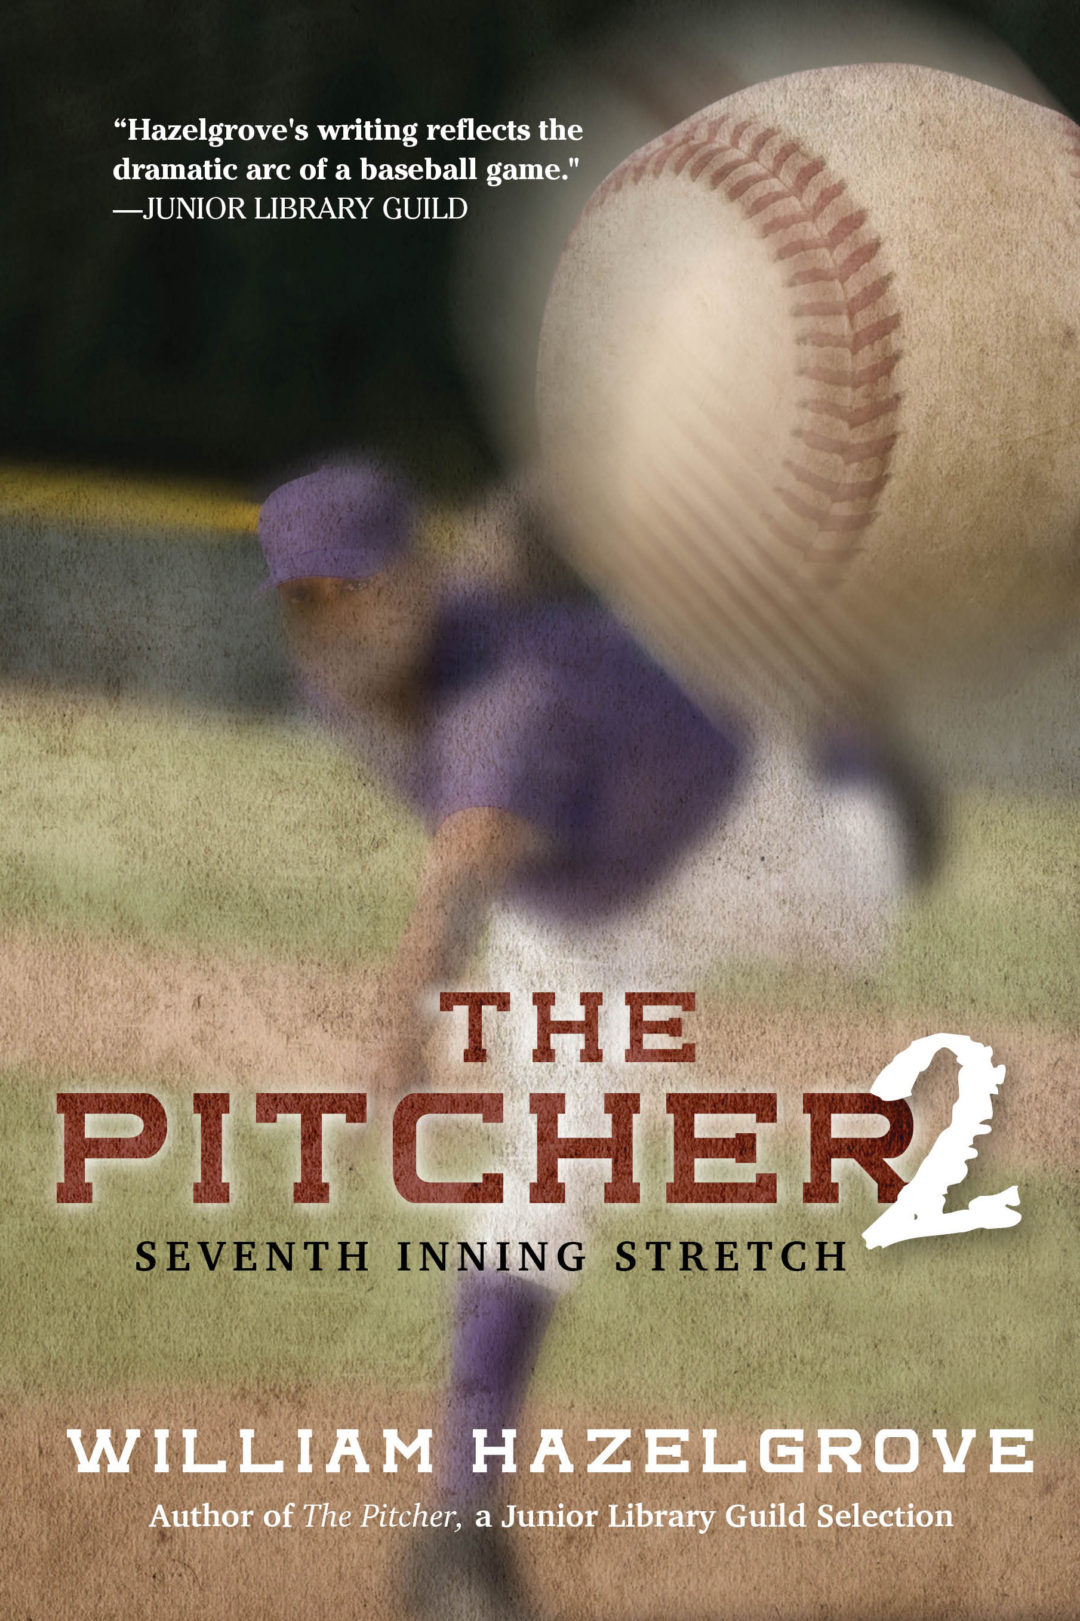 The Pitcher 2